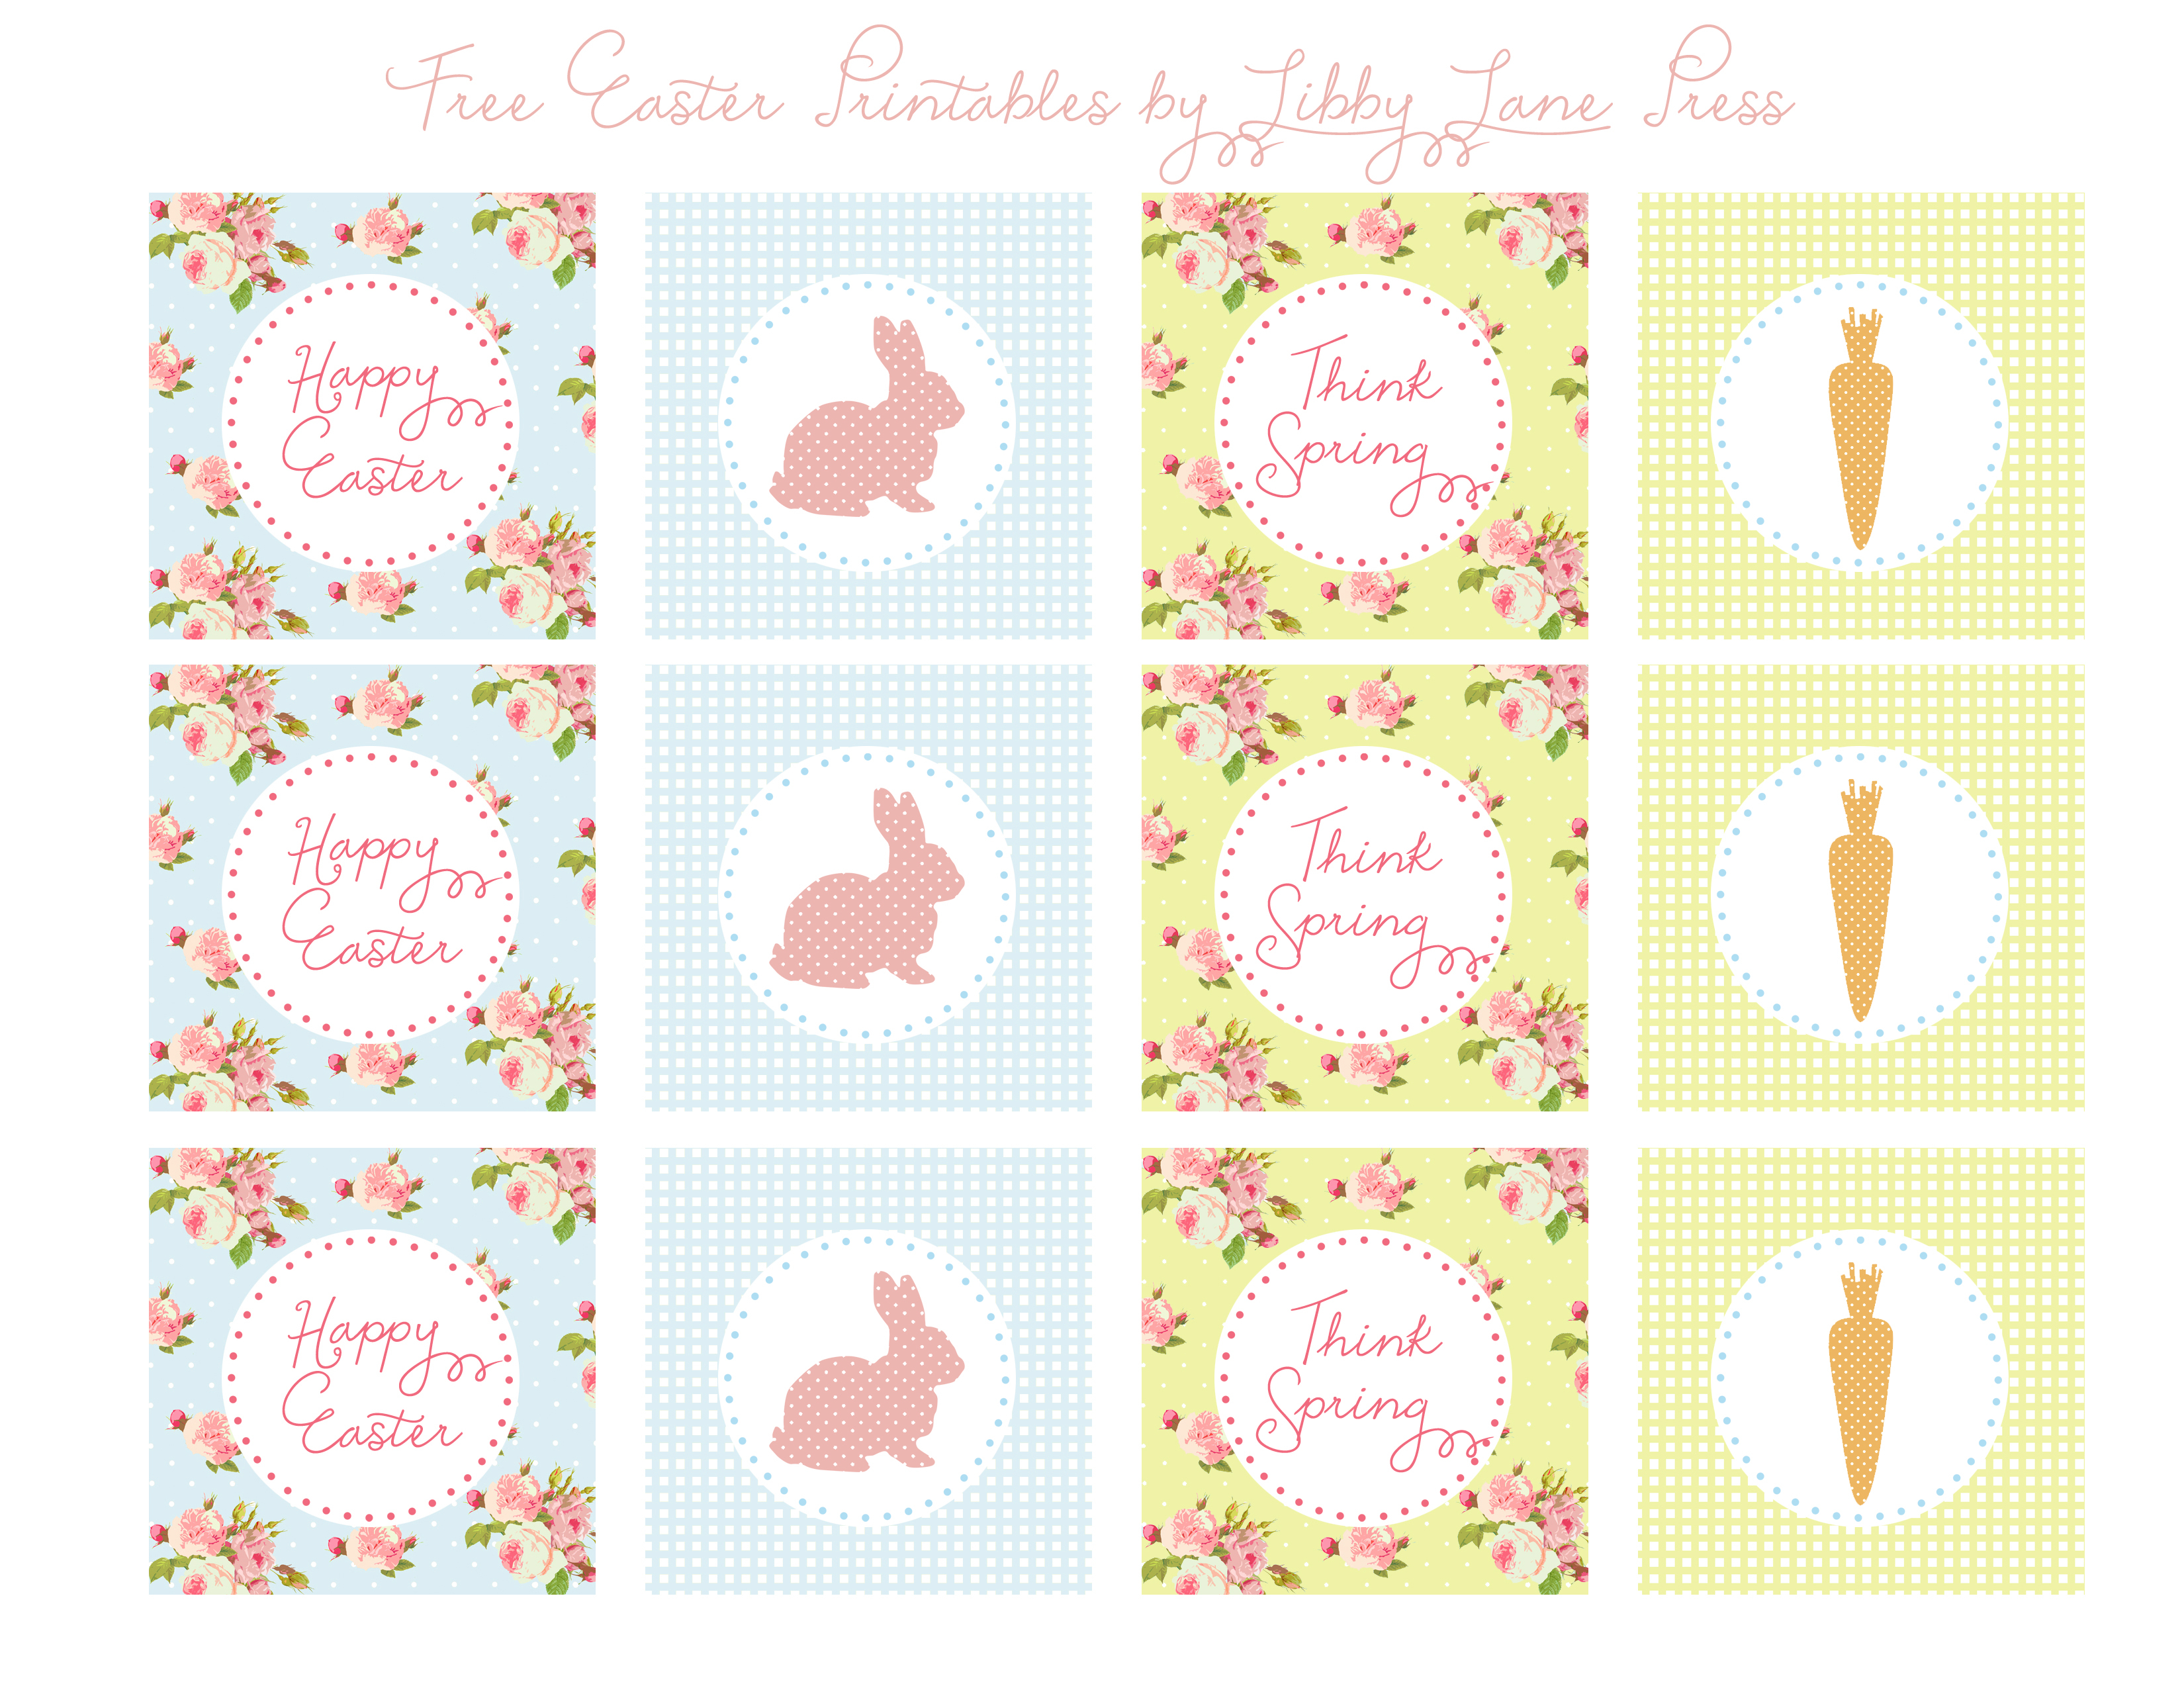 Easter Free Printables-Party Circles - The Party Teacher - Free Printable Party Circles